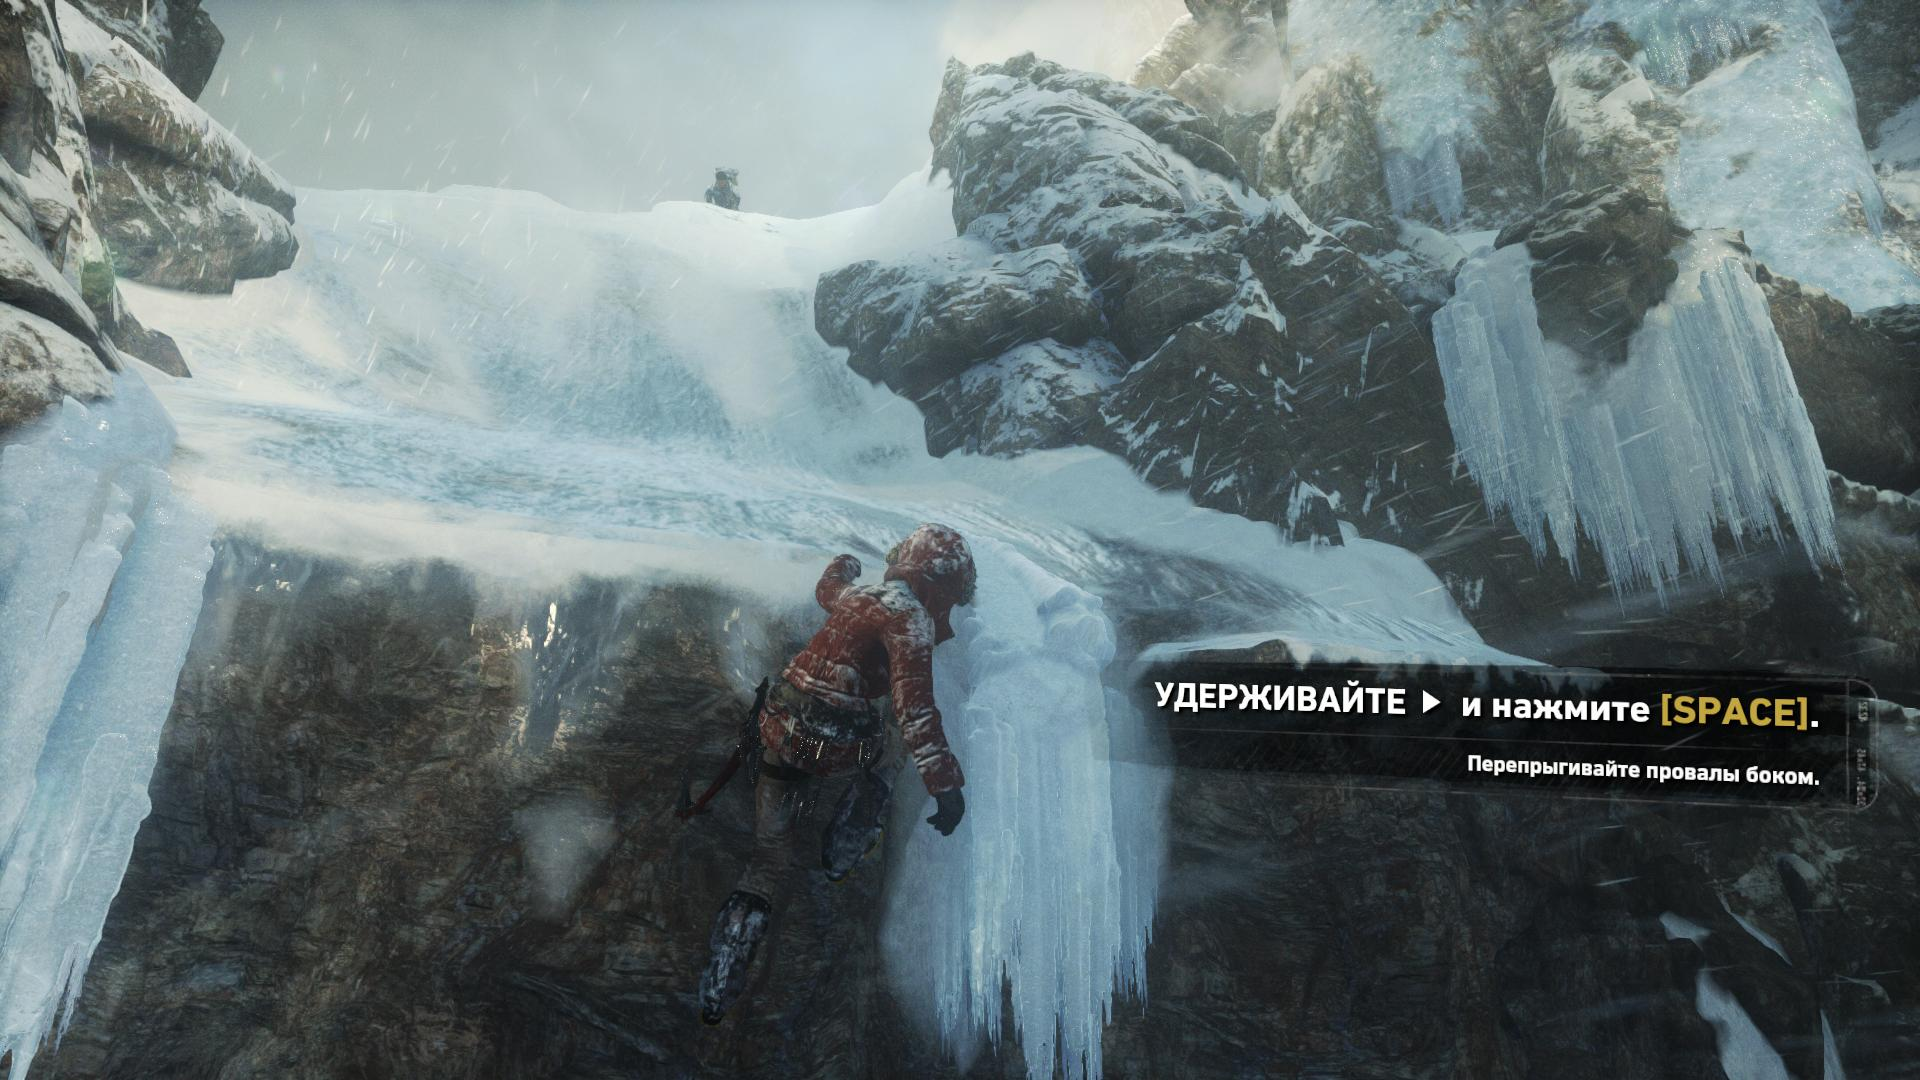 Rise of the Tomb Raider - Digital Deluxe Edition [v 1.0.668.1 + DLC] (2016) PC | RePack от Valdeni - Скриншот 2